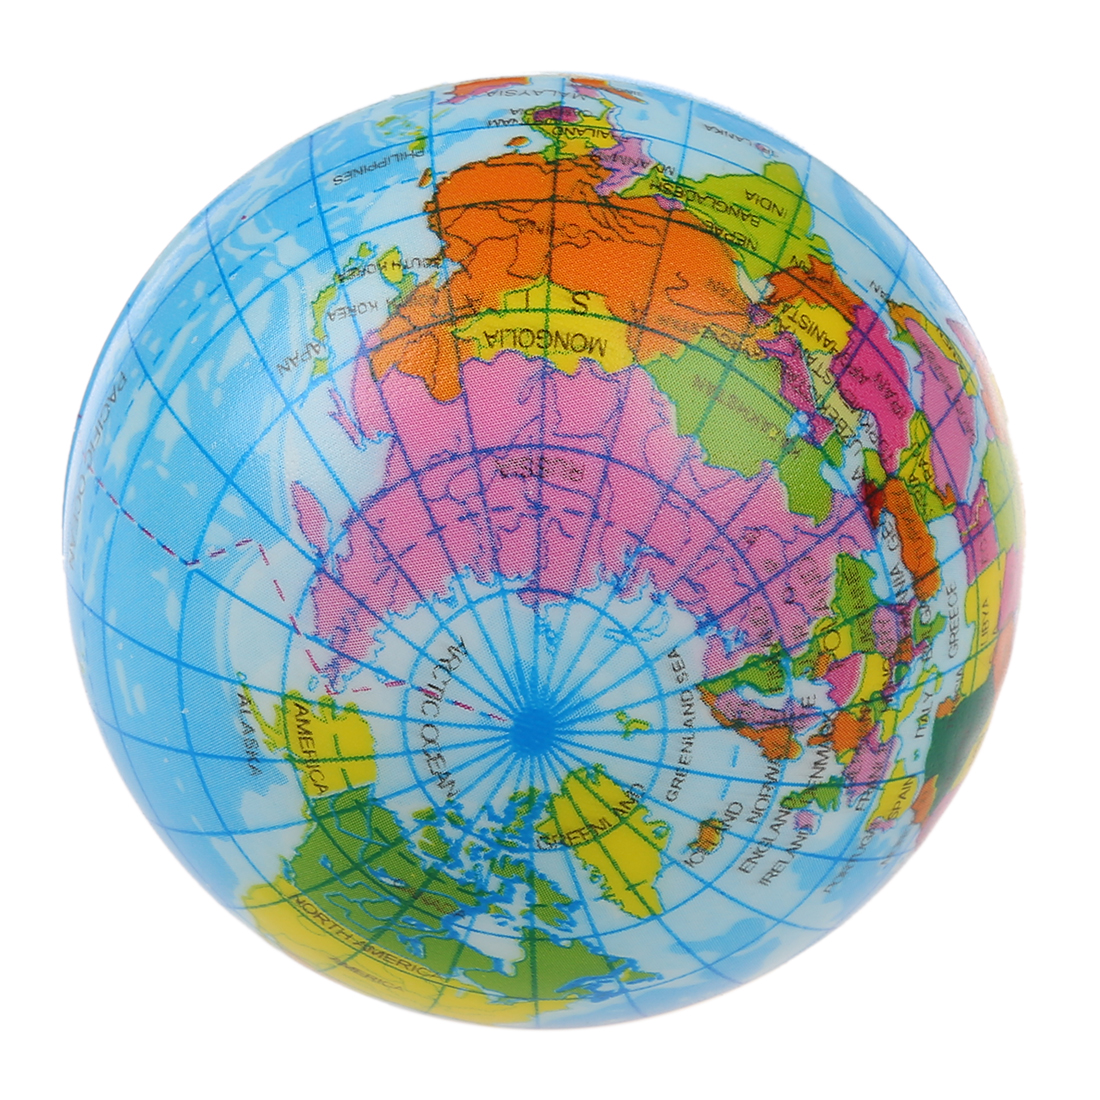 New world map foam earth globe stress relief bouncy ball atlas aeproducttsubject gumiabroncs Gallery